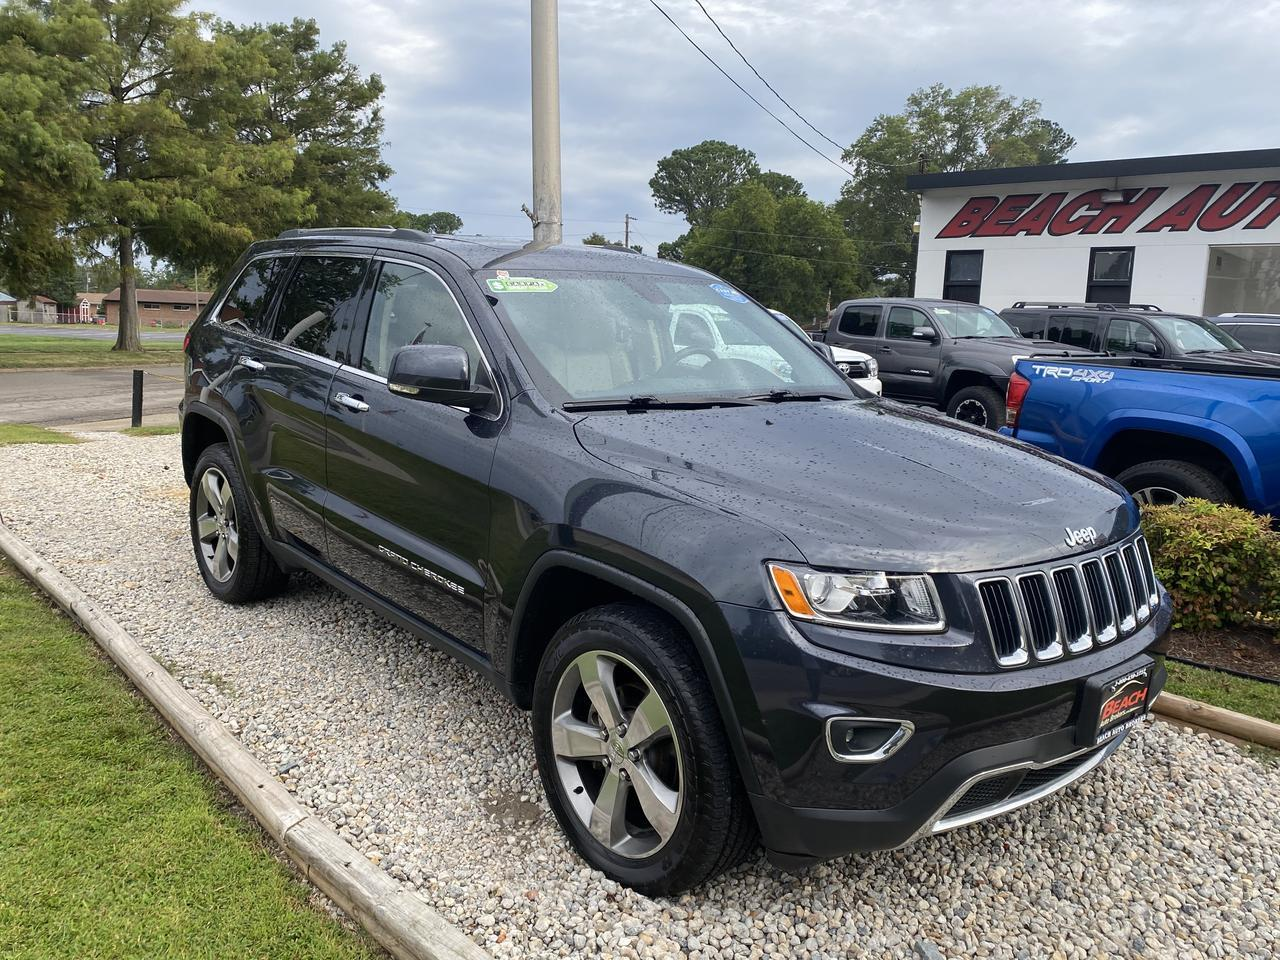 2014 JEEP GRAND CHEROKEE LIMITED 4X4, WARRANTY, LEATHER, NAV, SUNROOF, HEATED SEATS, REMOTE START, BACKUP CAM, CLEAN CARFAX! Norfolk VA